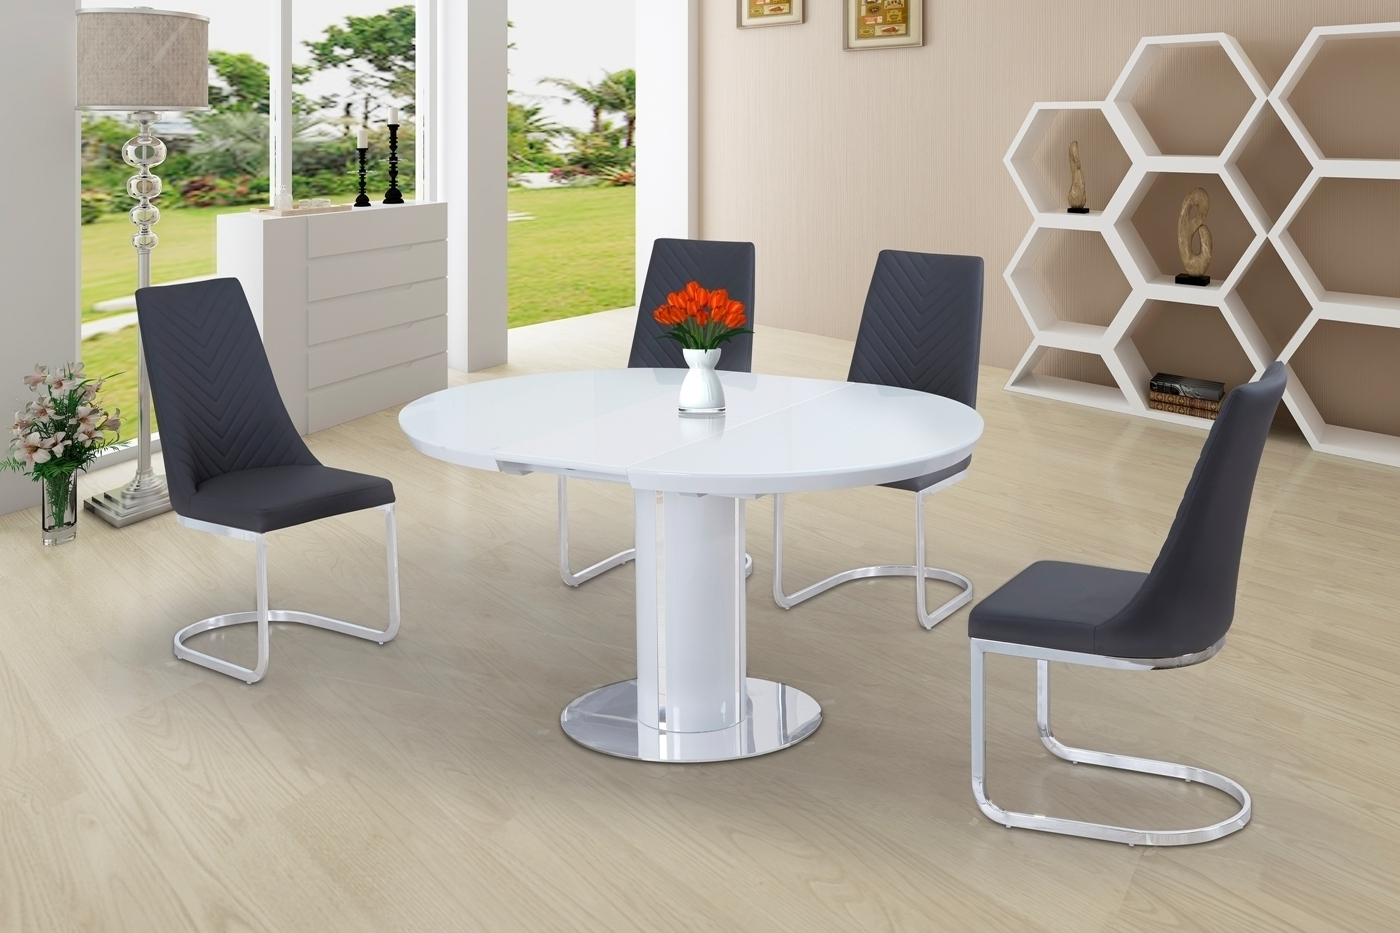 Round White Glass High Gloss Dining Table And 6 Grey Chairs Intended For Trendy Gloss Dining Sets (View 19 of 25)